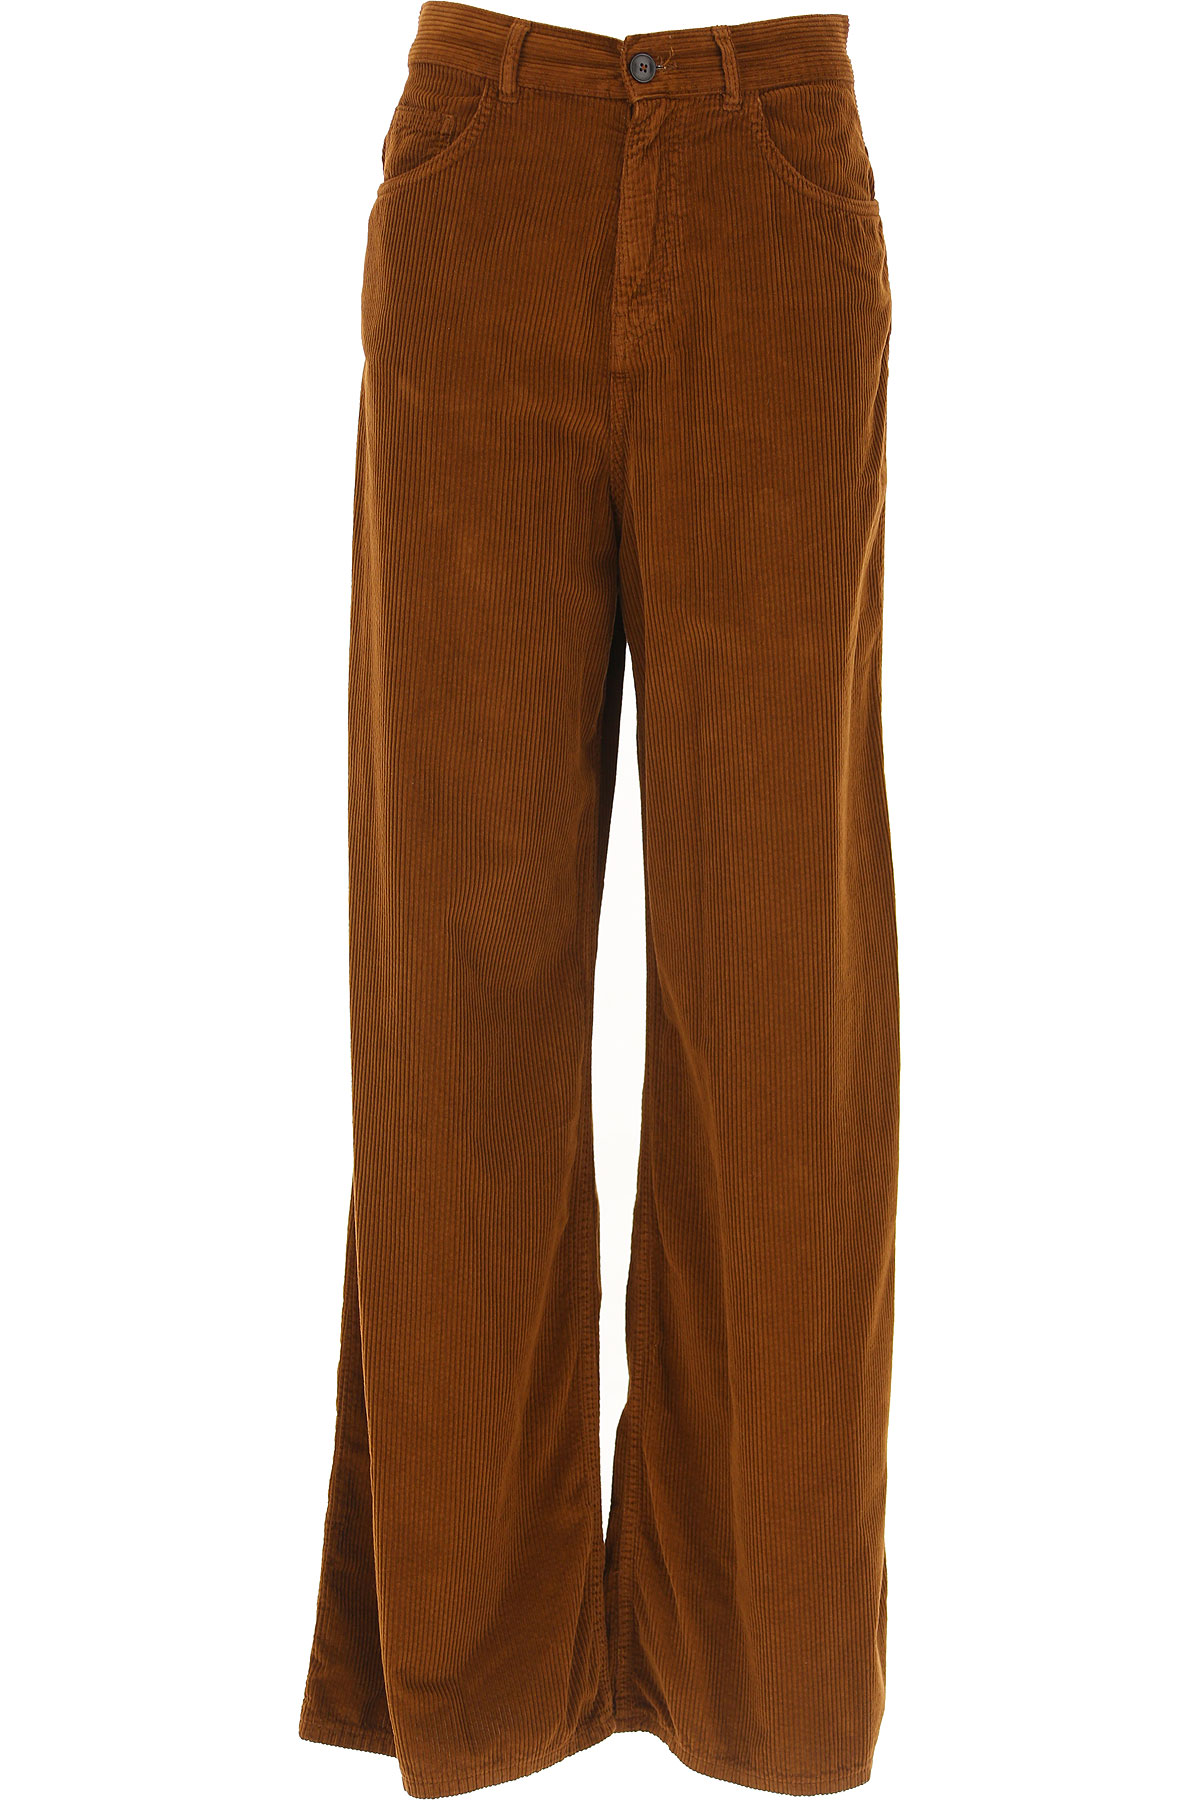 Image of Jucca Pants for Women, Cinnamon, Cotton, 2017, 26 28 30 32